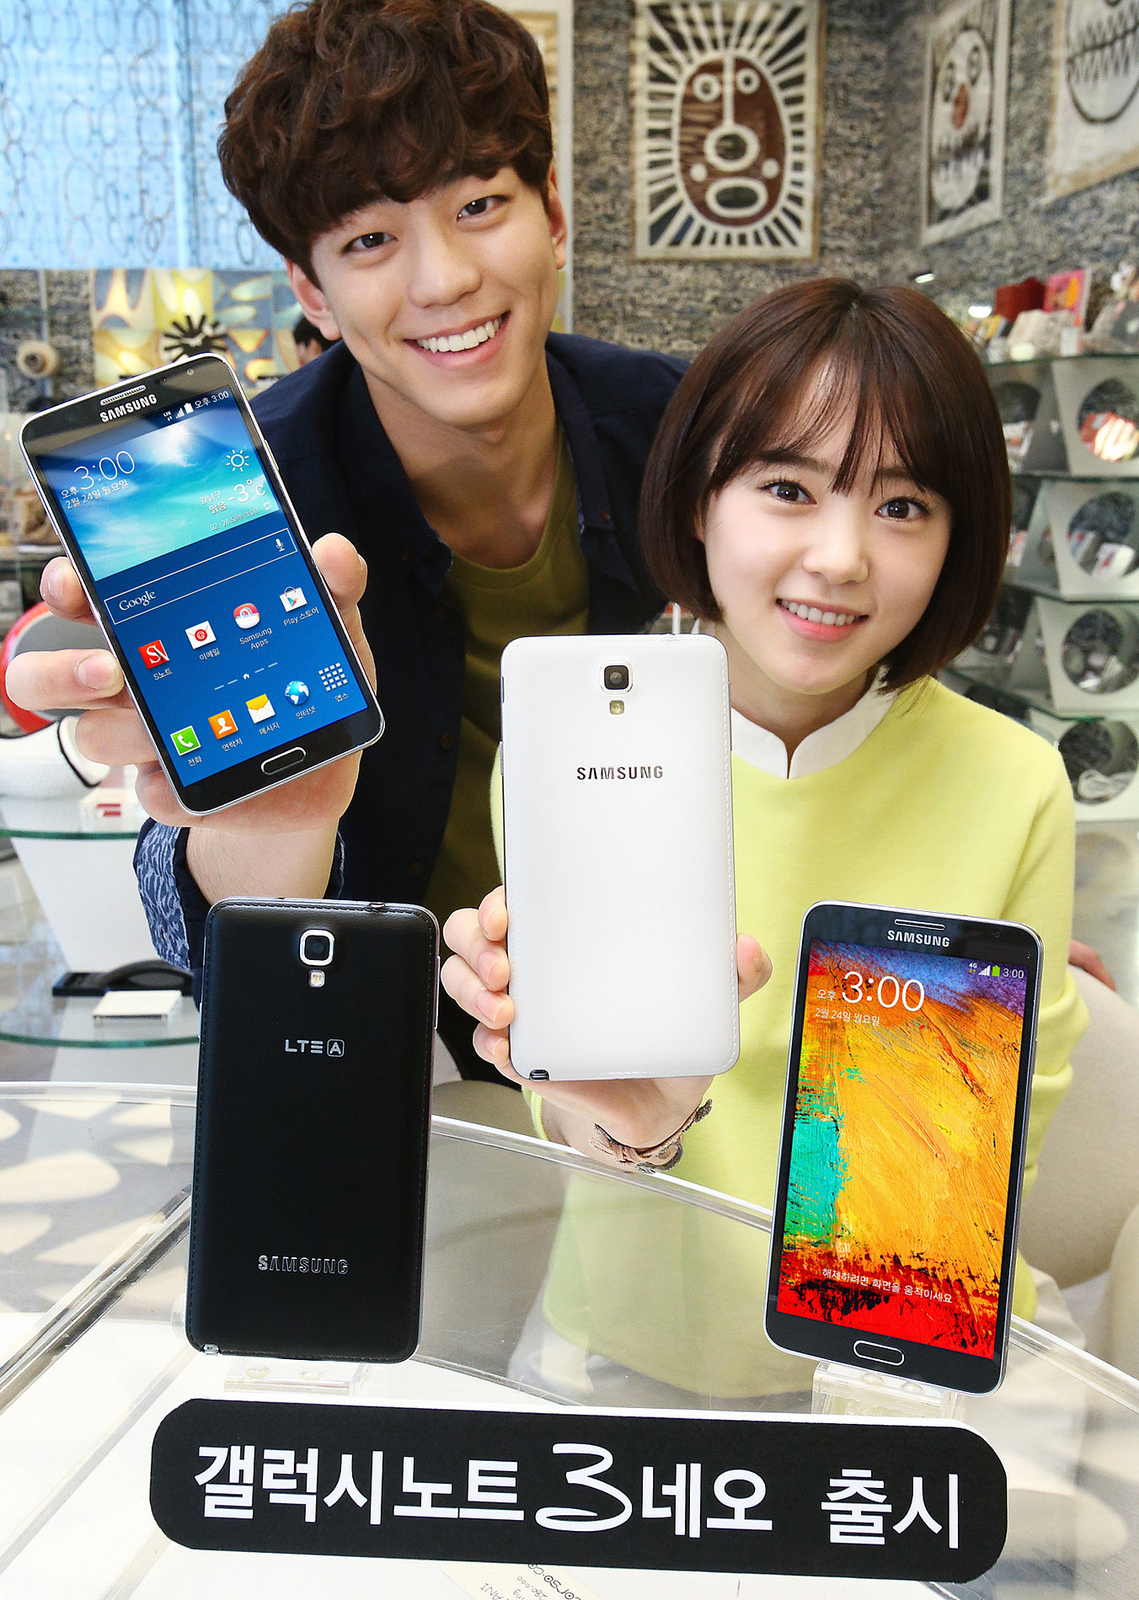 Samsung-launches-the-Galaxy-Note-3-Neo-in-South-Korea